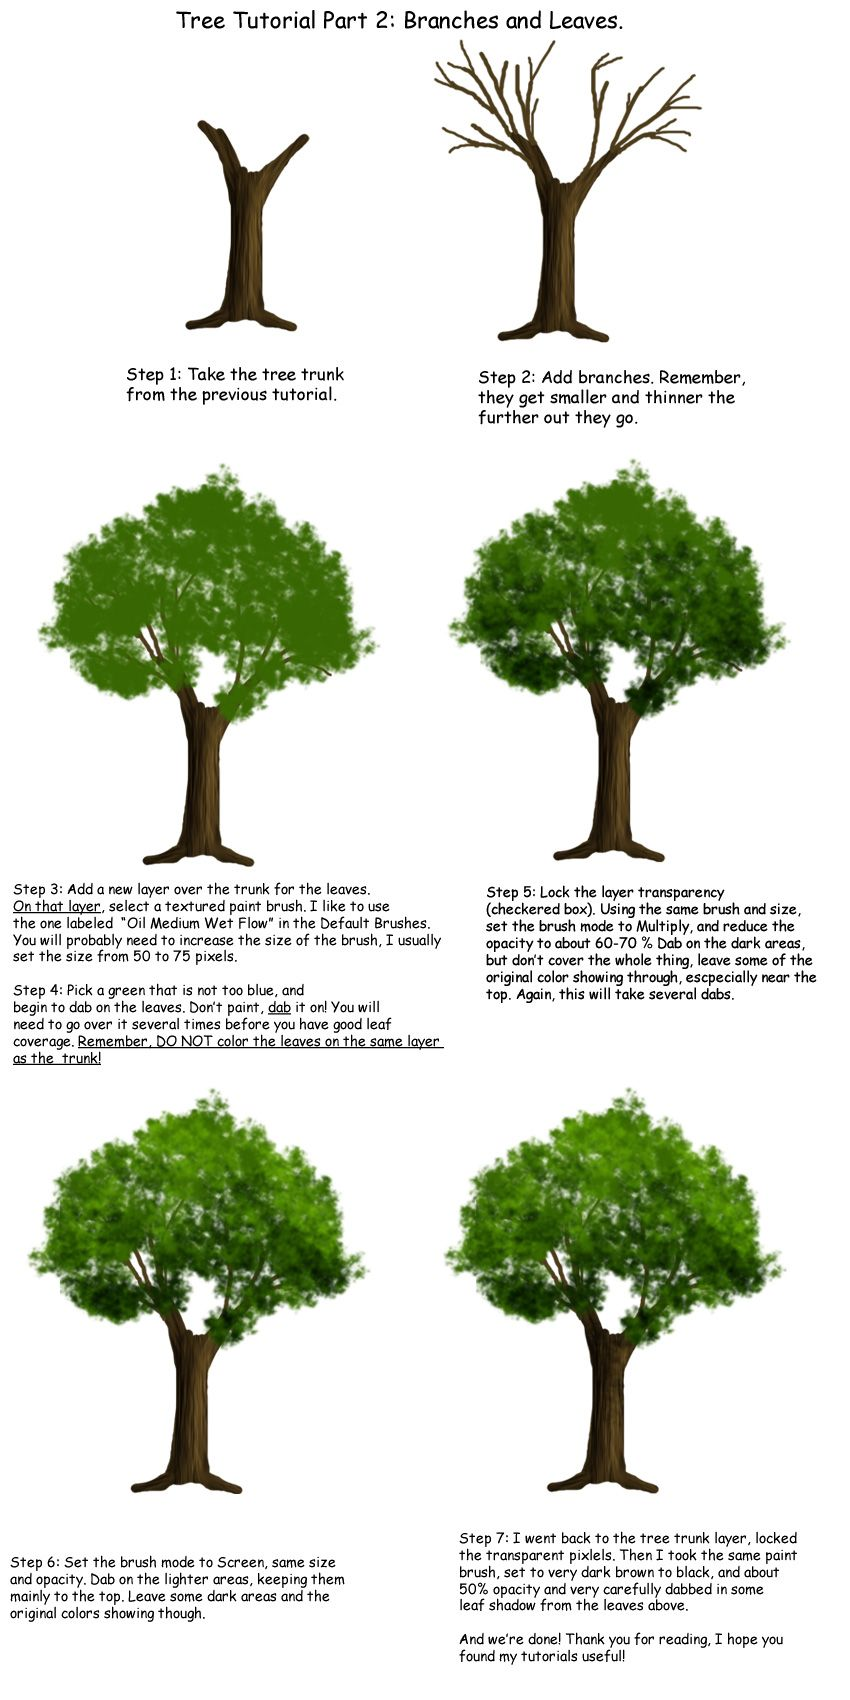 Tree Tutorial Part 2 By Tephra76iantart On @deviantart